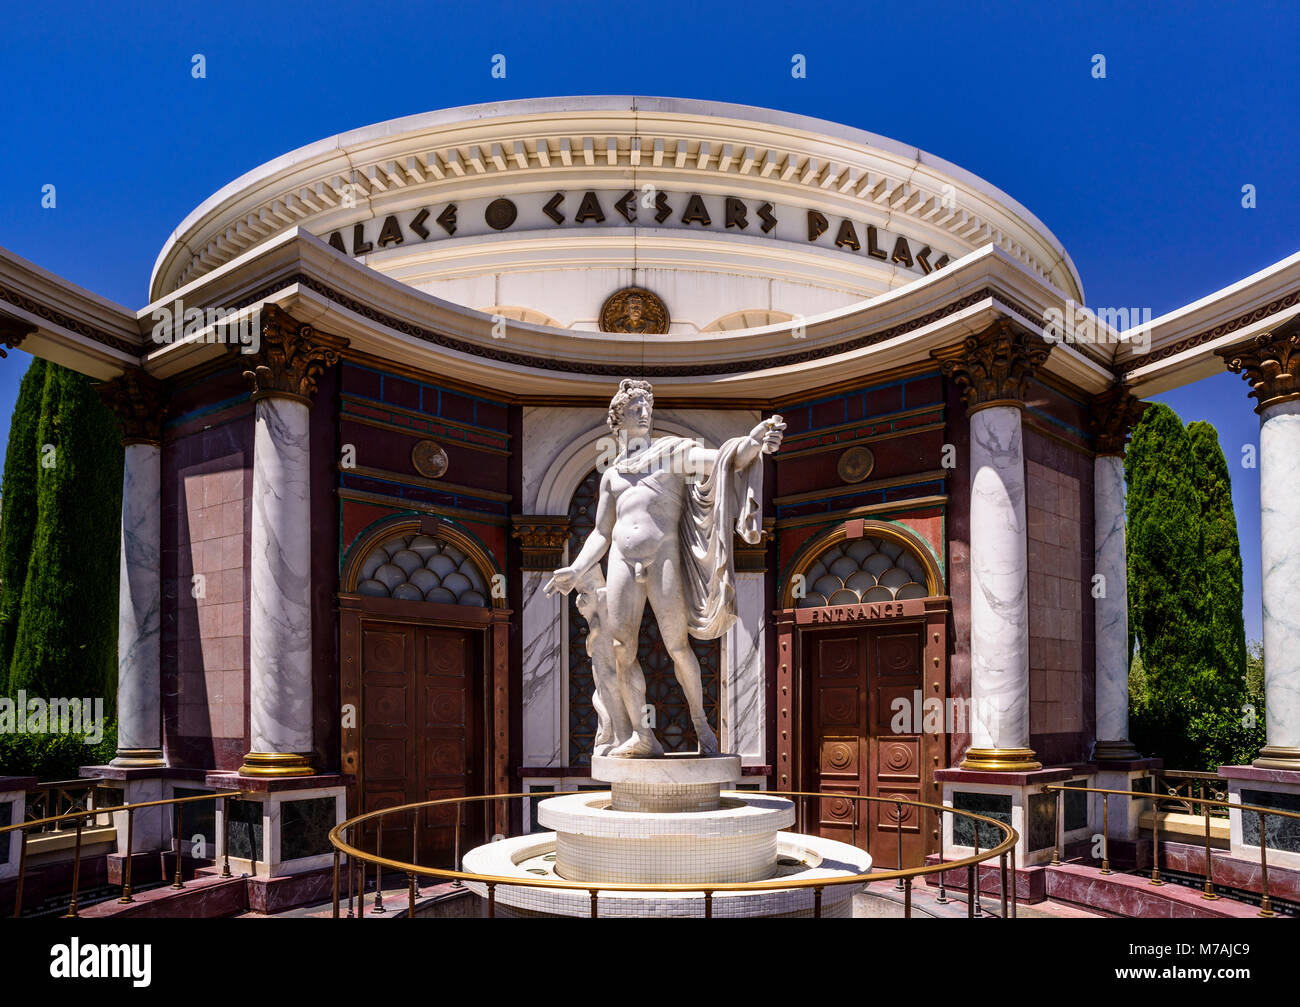 Casino caesar palace stock photos casino caesar palace for Garden statues las vegas nv